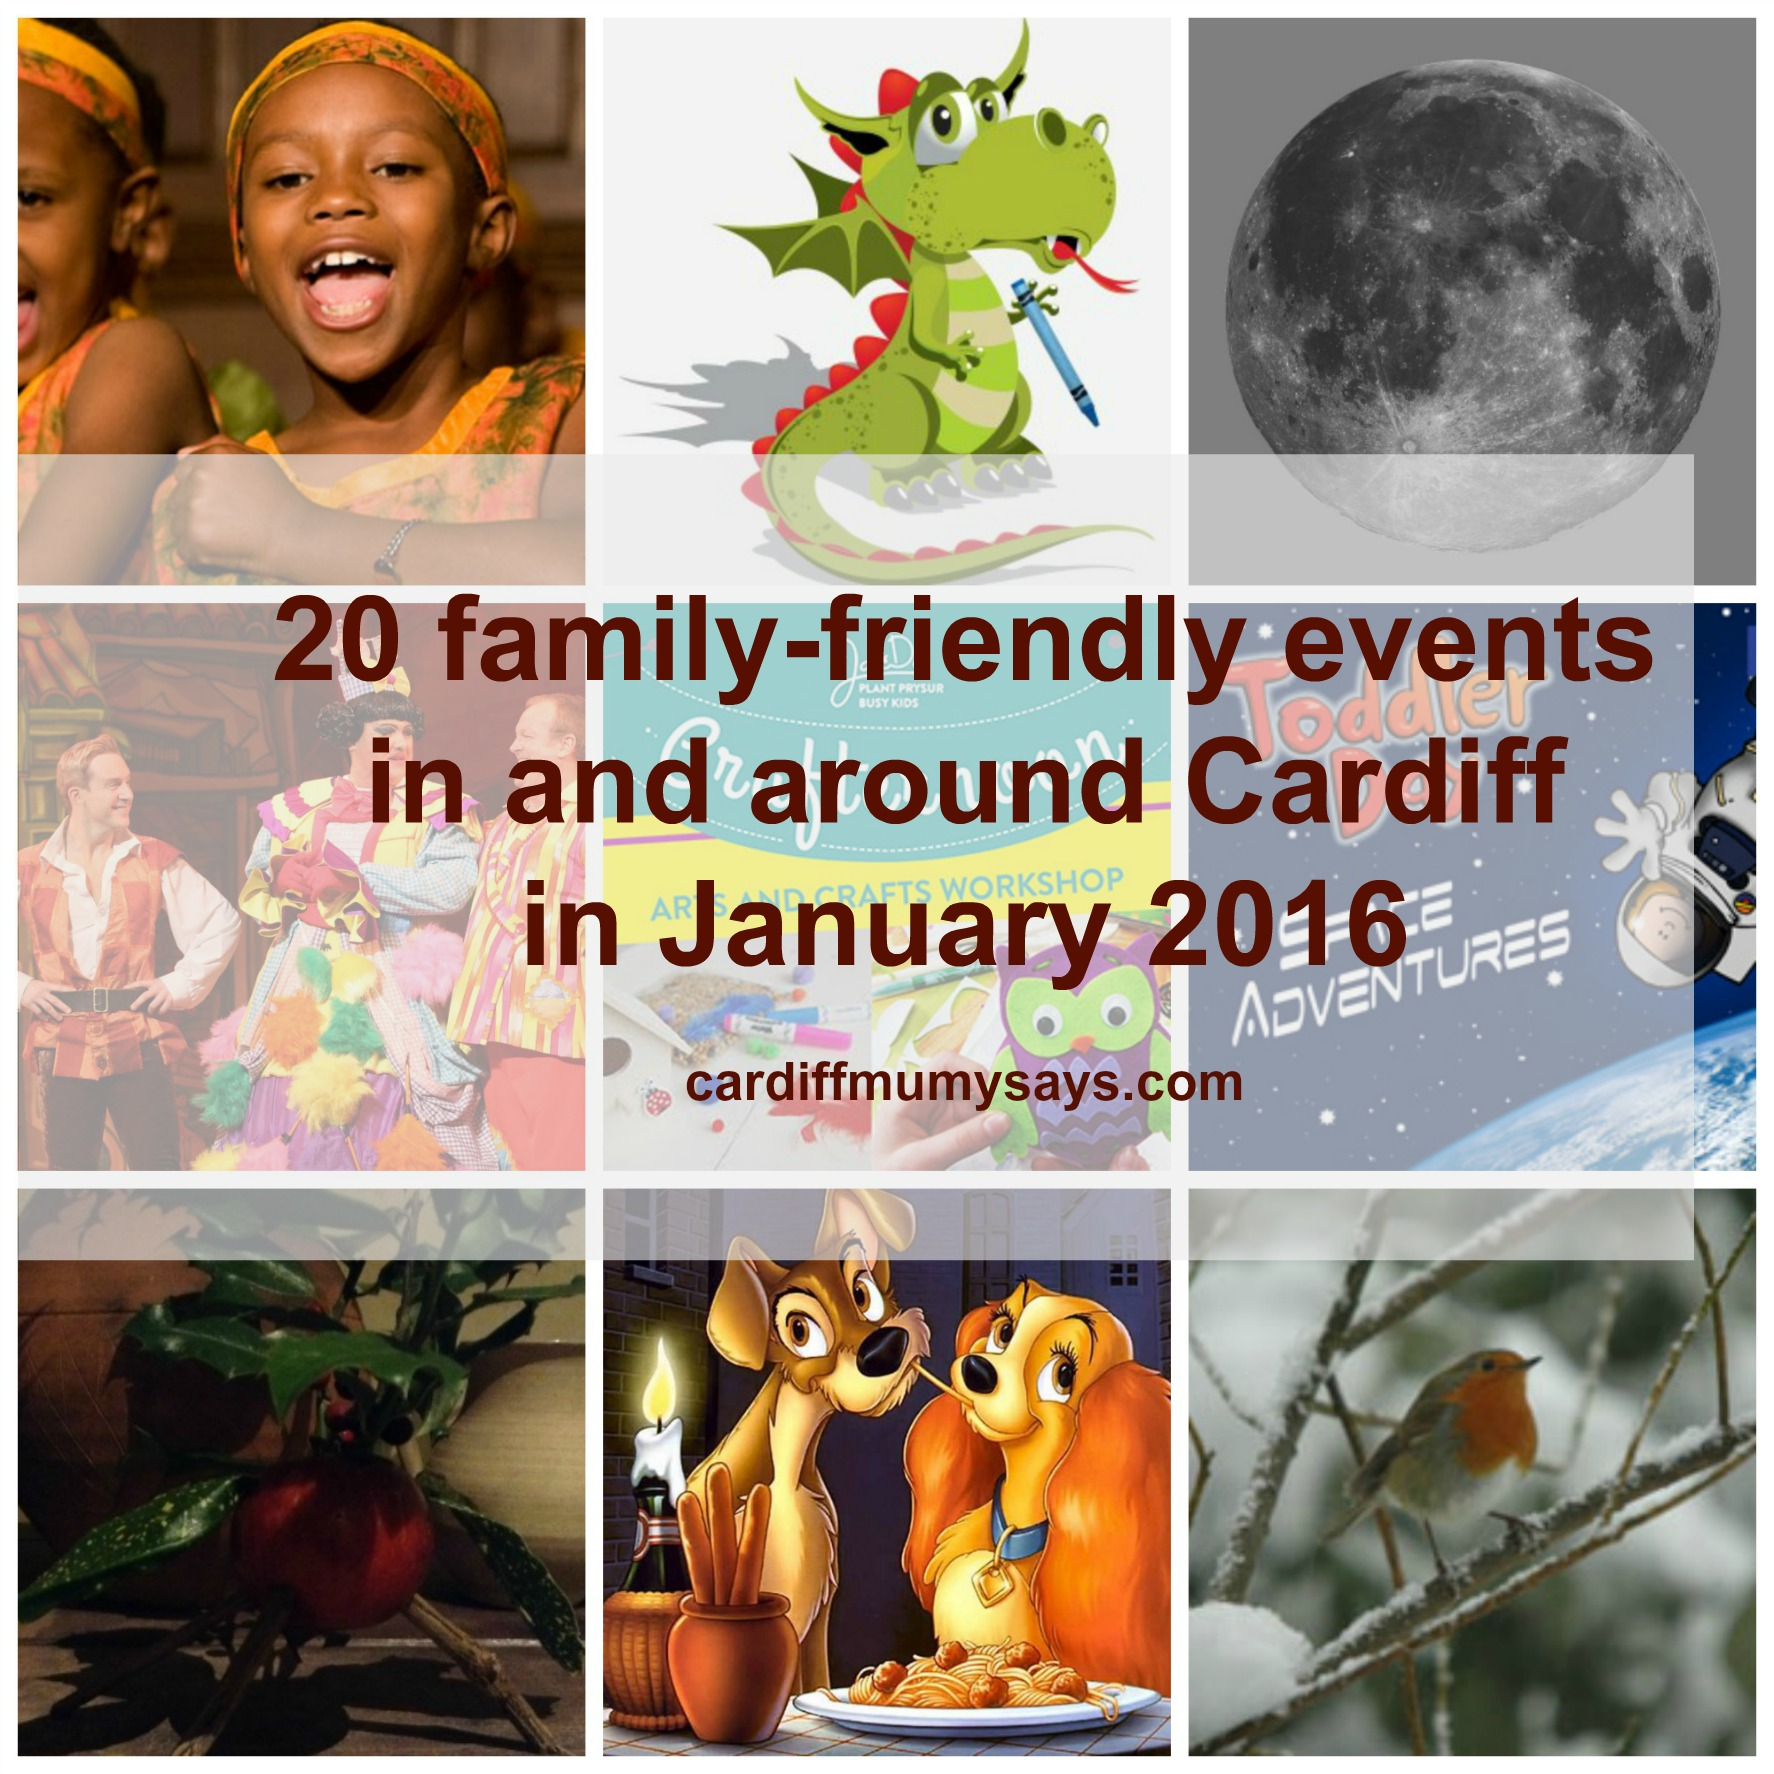 Cardiff Mumy Says January 2016 events with text